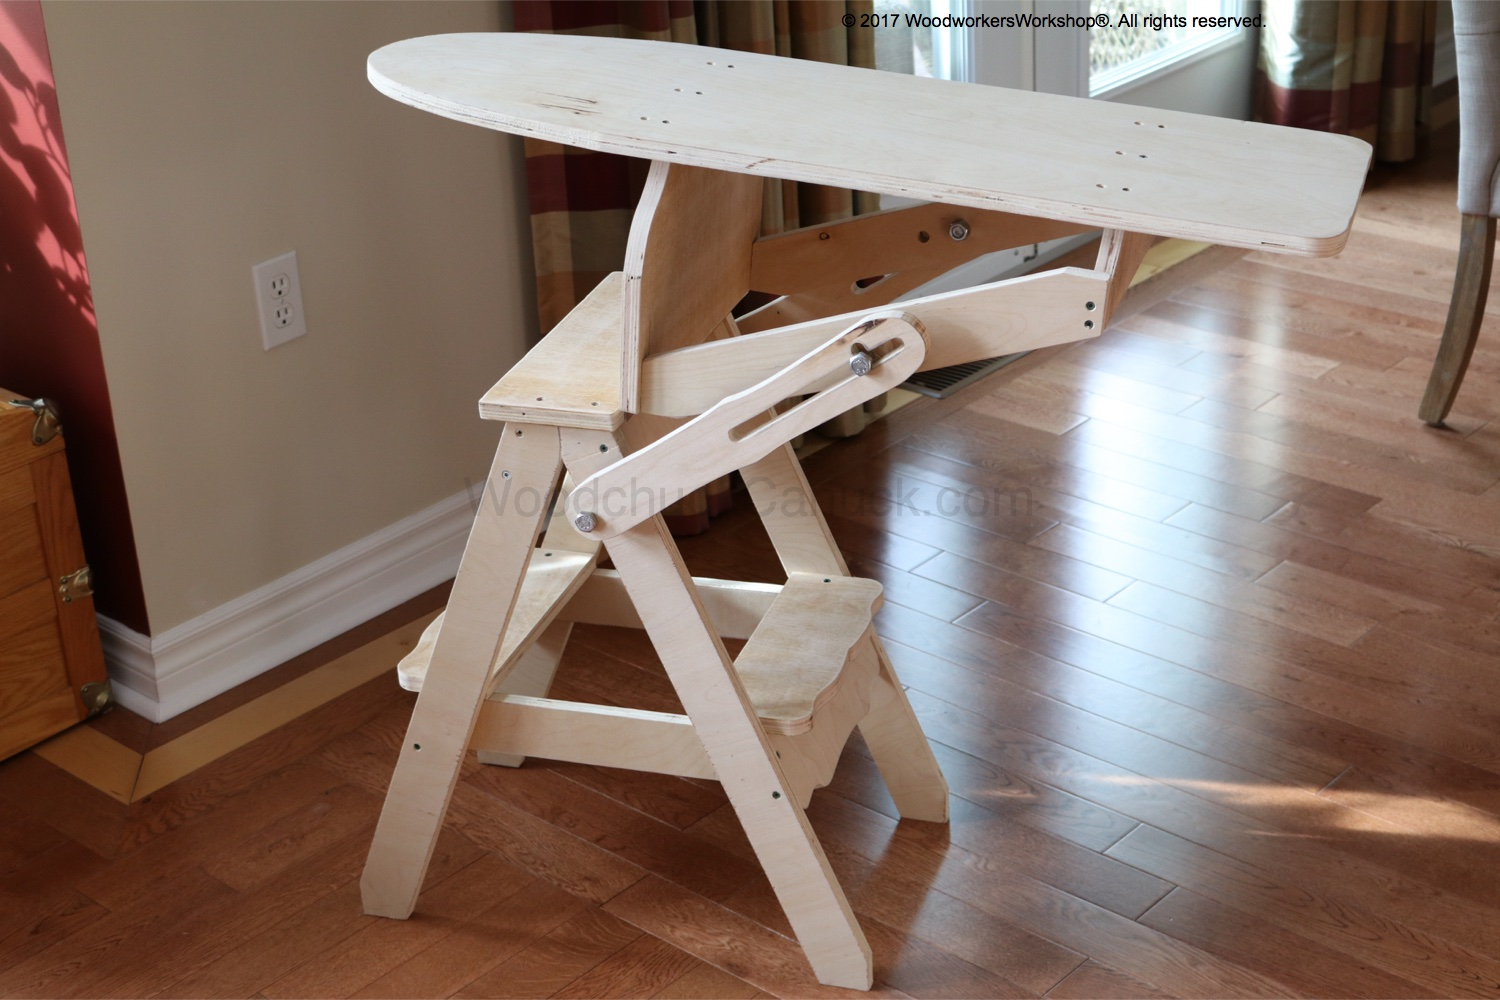 3-in-1 Chair Woodworking Plan